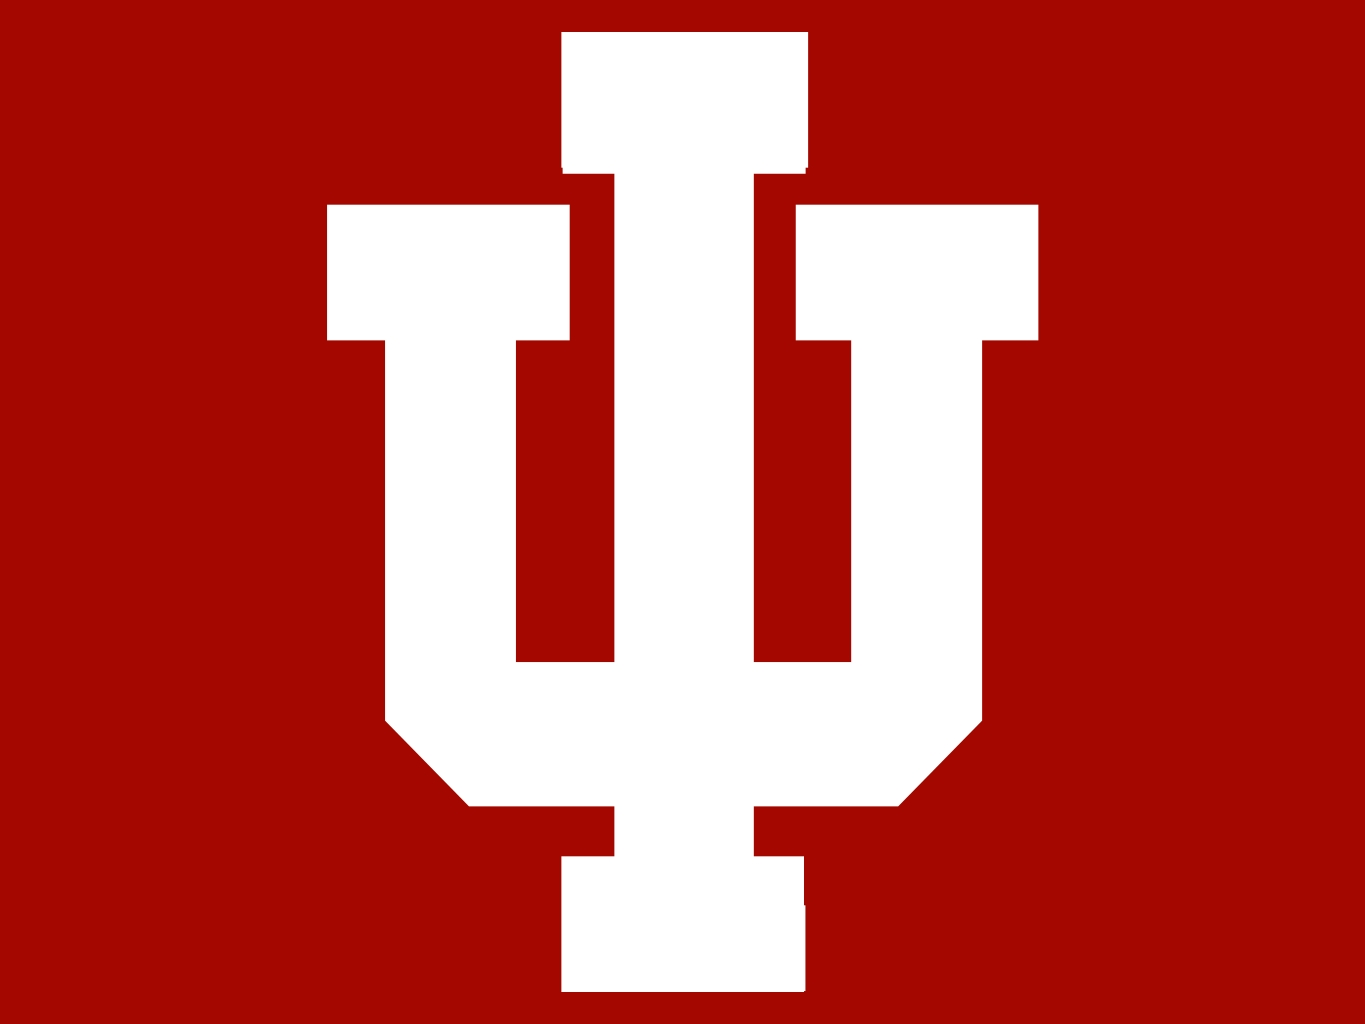 free indiana university wallpaper wallpapersafari